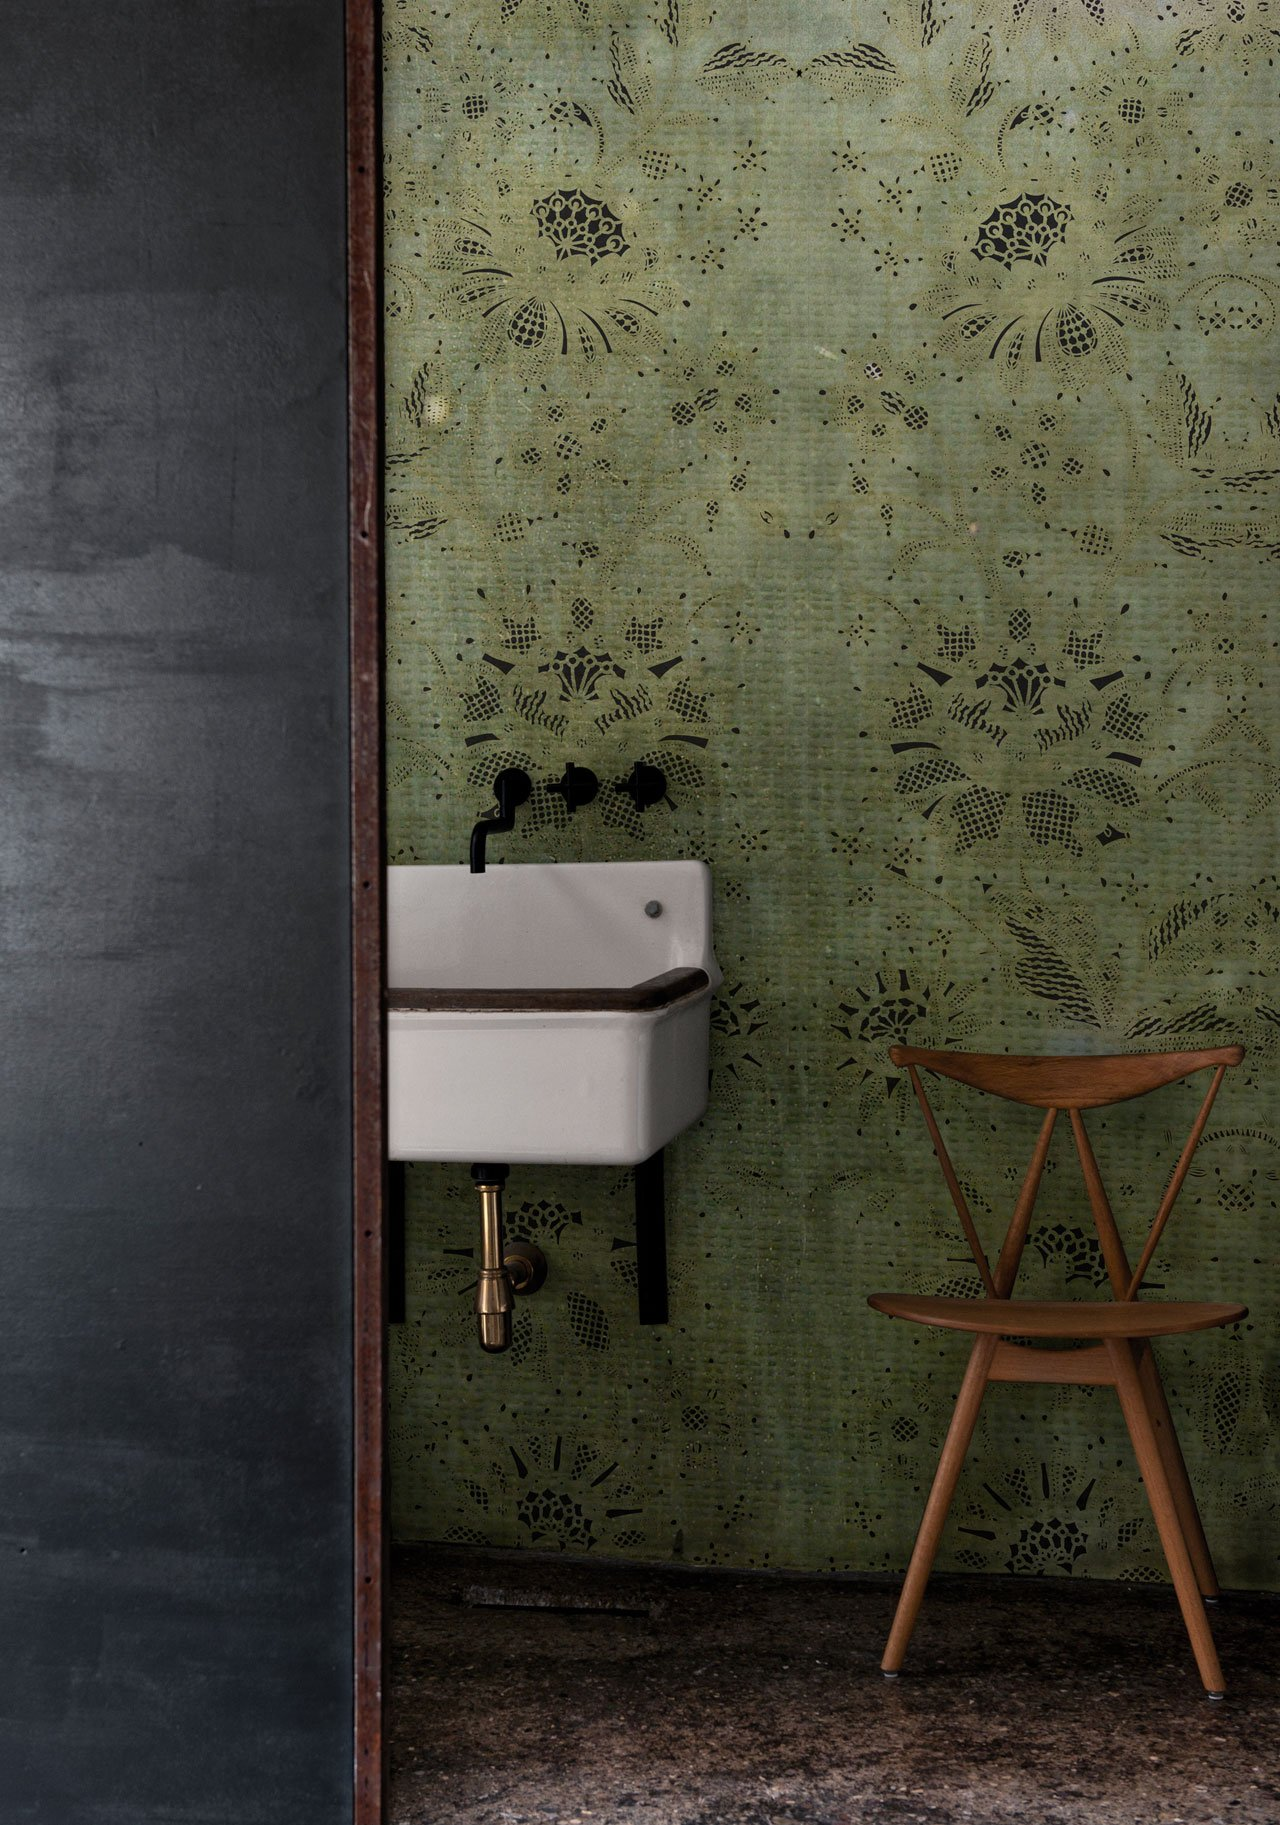 Carillon Wallpaper designed by CASA 1796 for the WET SYSTEM™ Collection © Wall&decò.